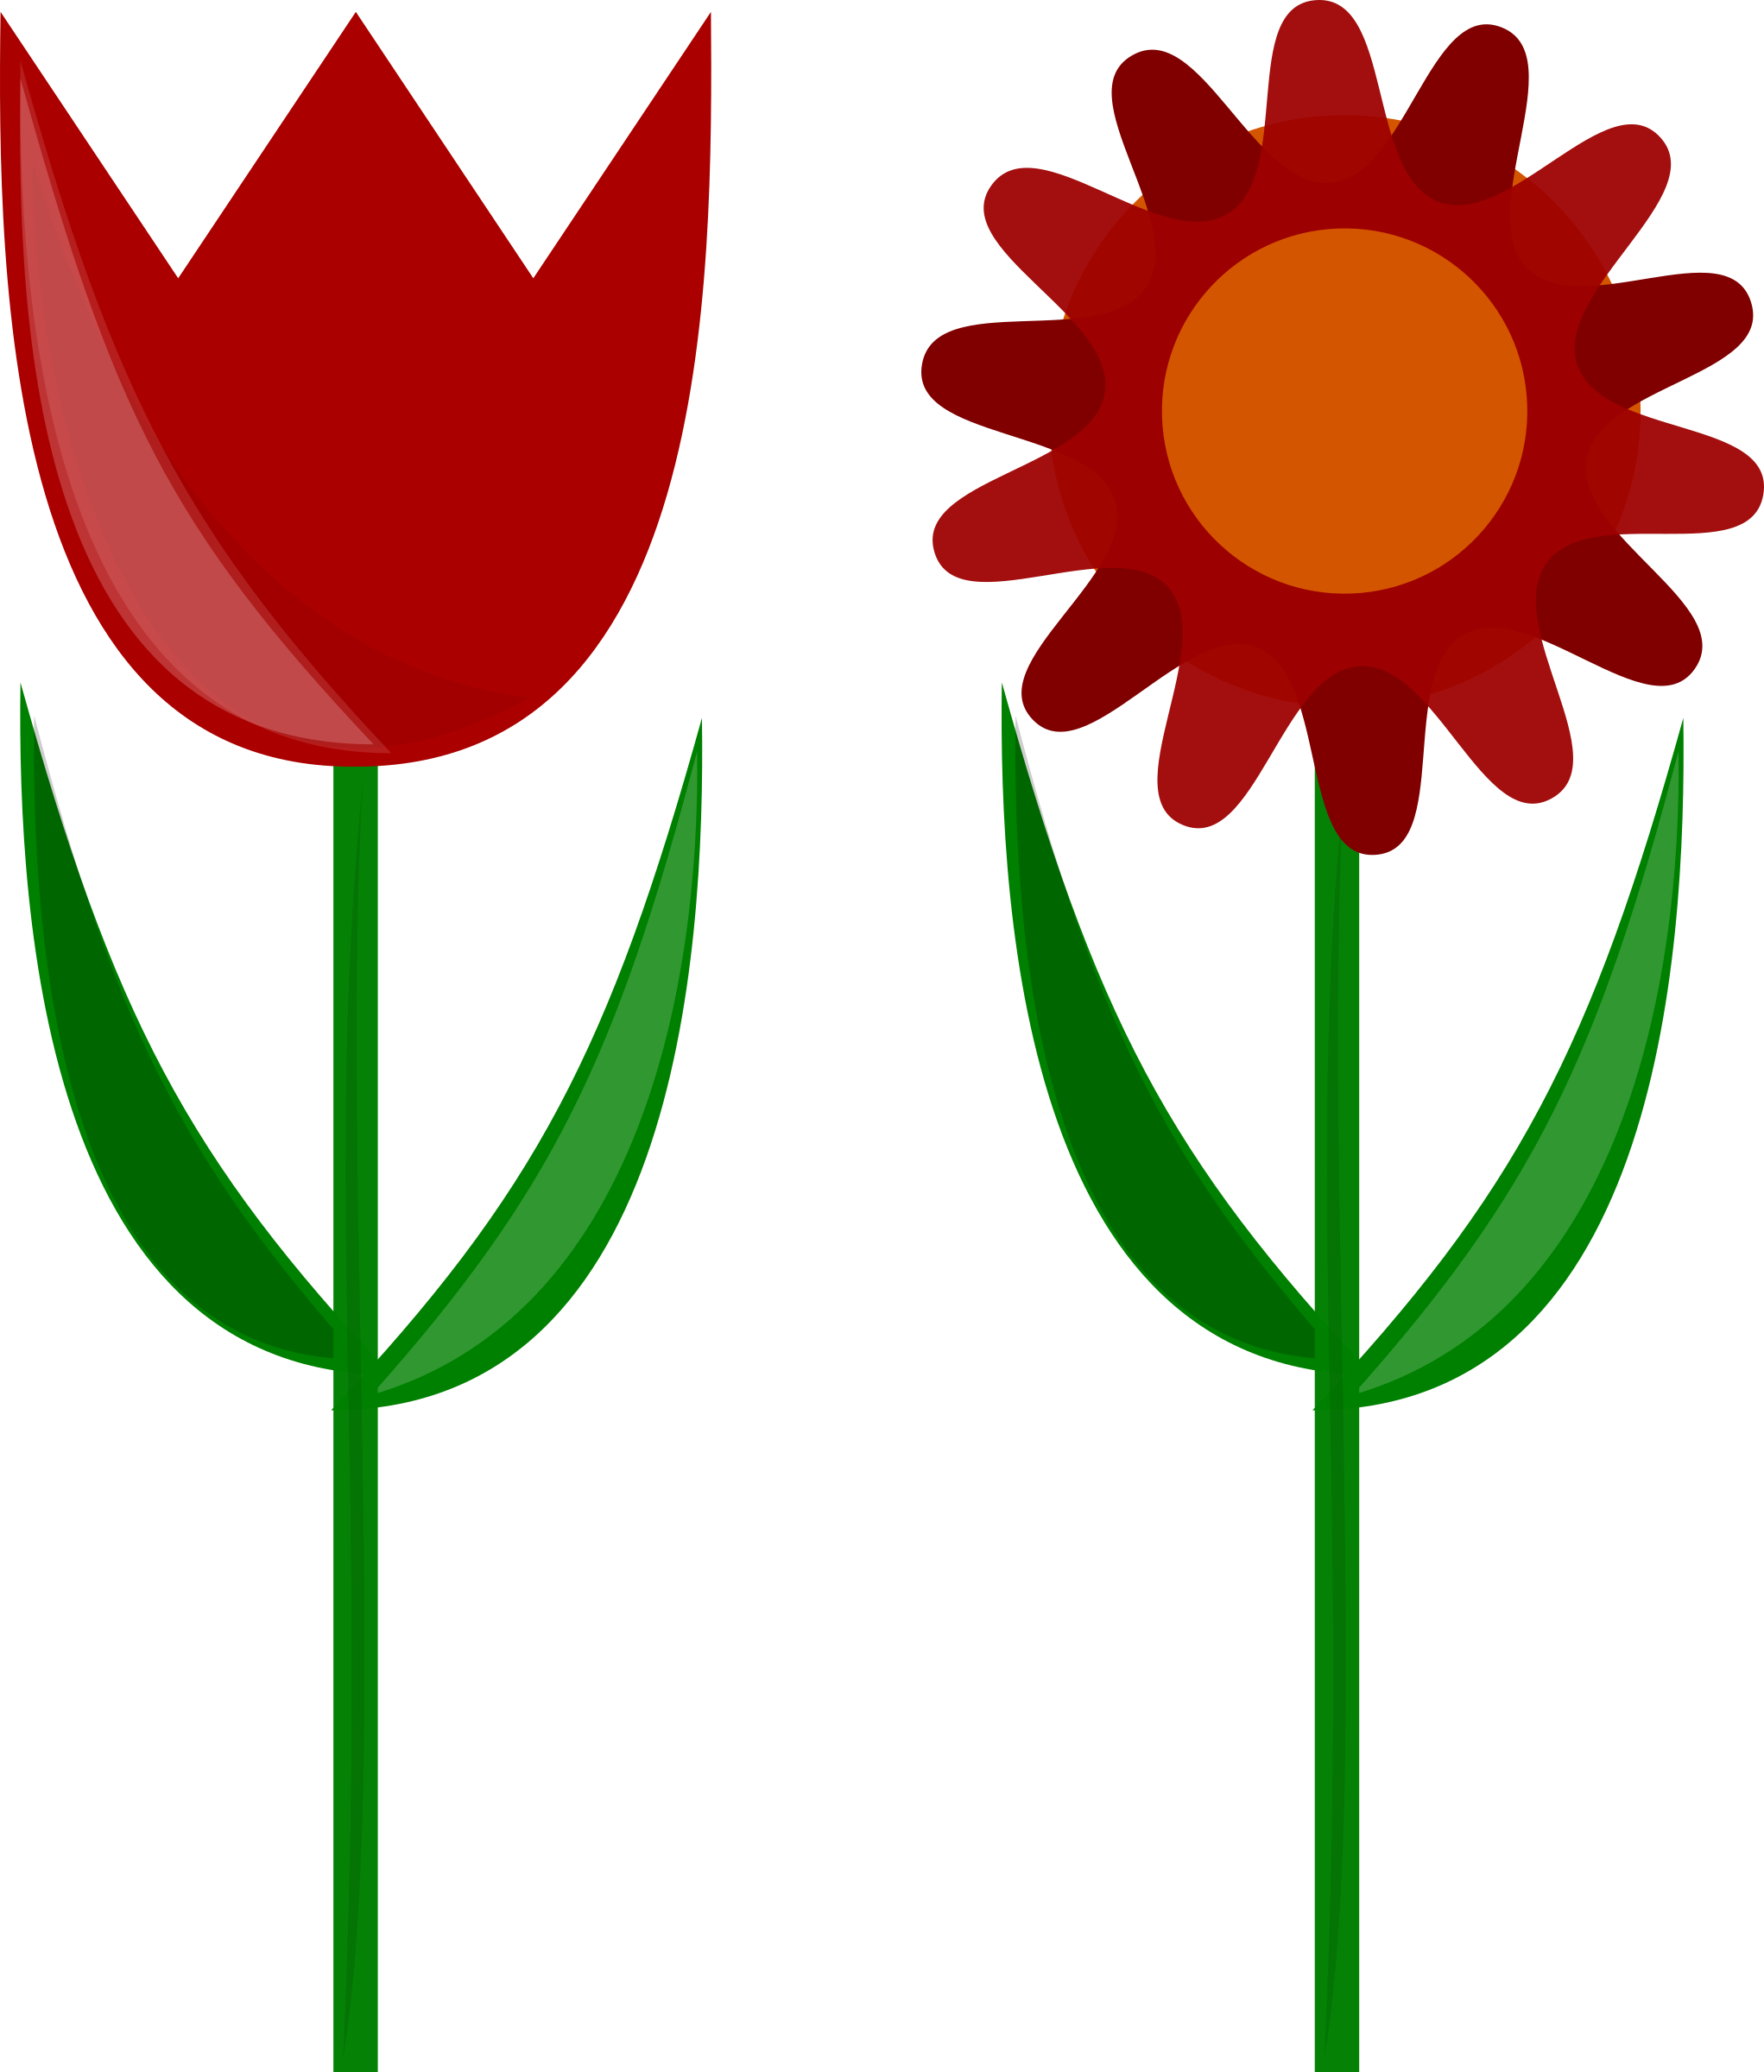 Flower with stem clipart. Flowers big image png